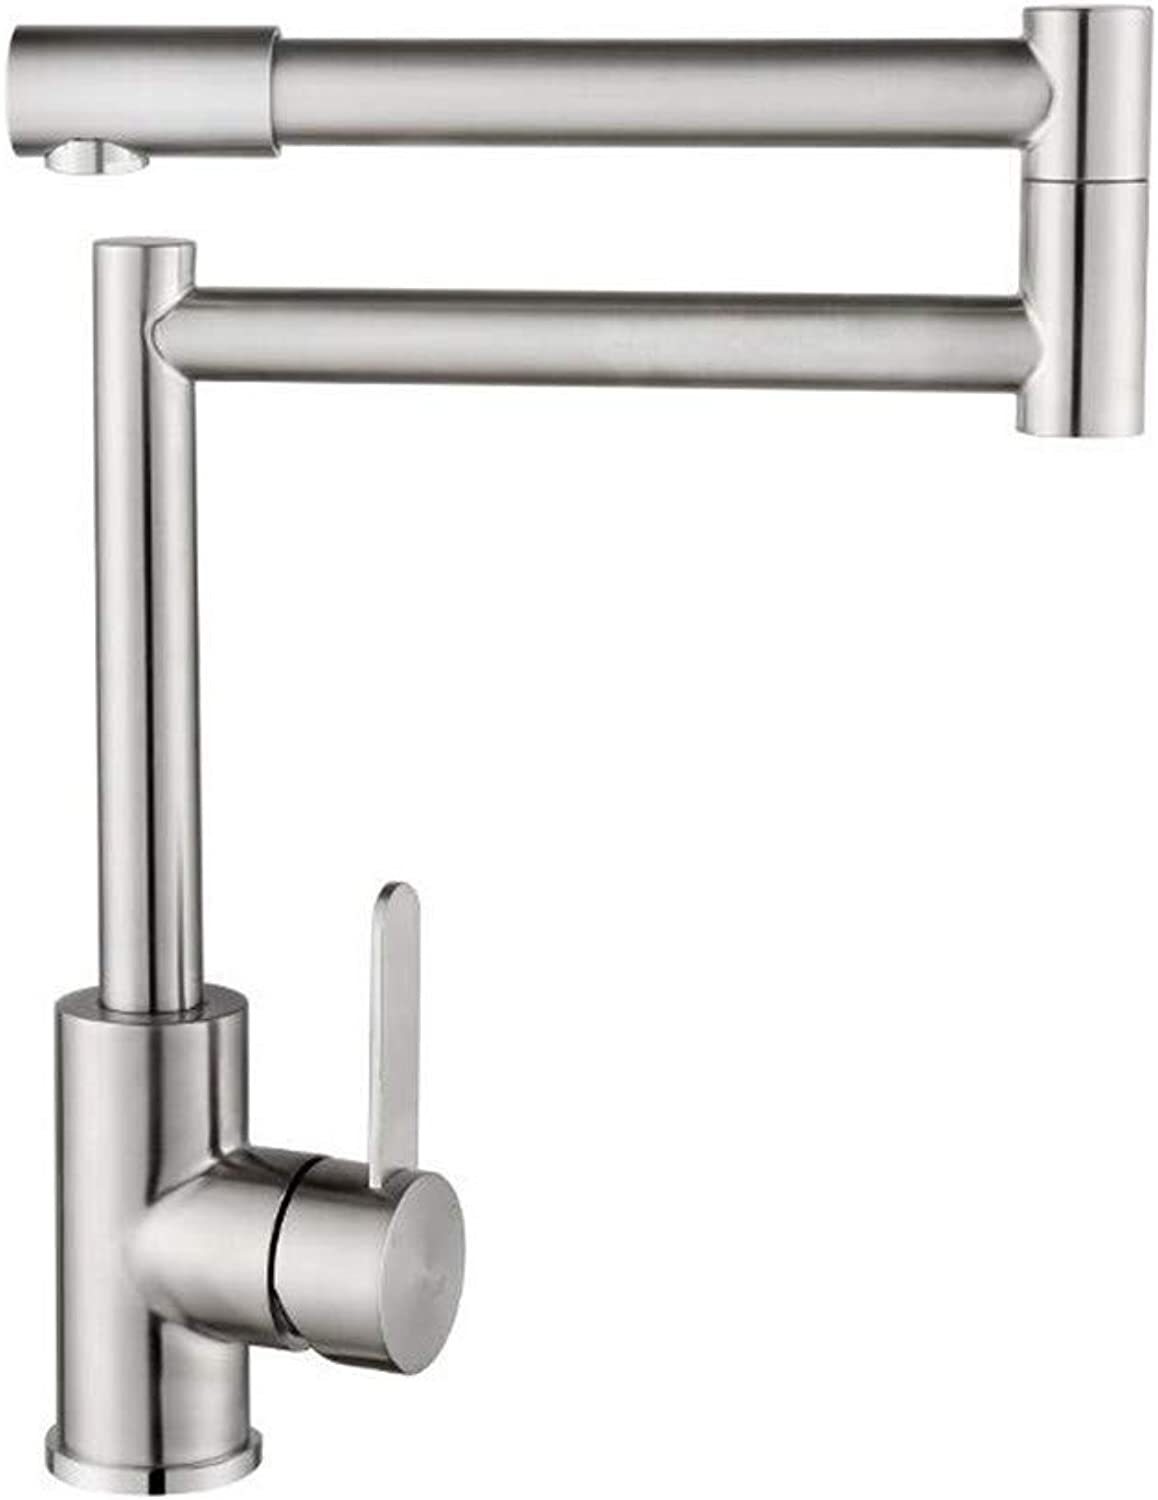 Oudan 304 Stainless Steel Cold Water Faucet Lavatory Hot and Cold Water Faucet Swingable, Size   -